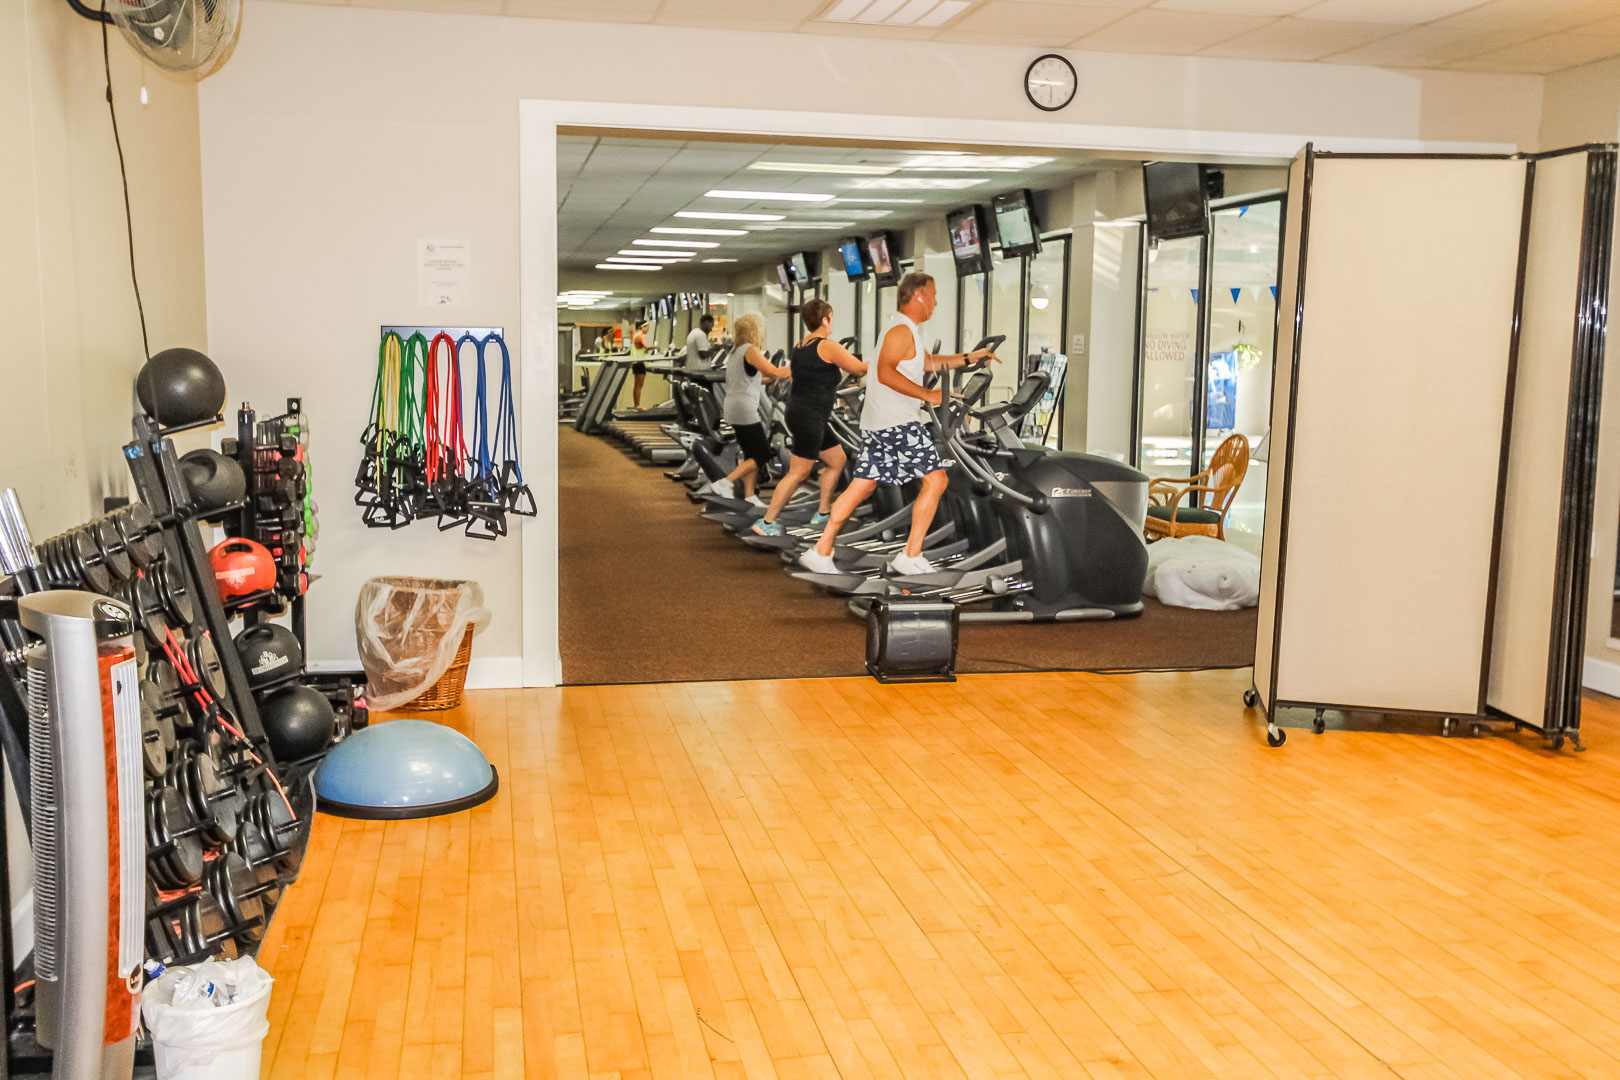 An exercise room at VRI's Players Club Resort in Hilton Head Island, South Carolina.